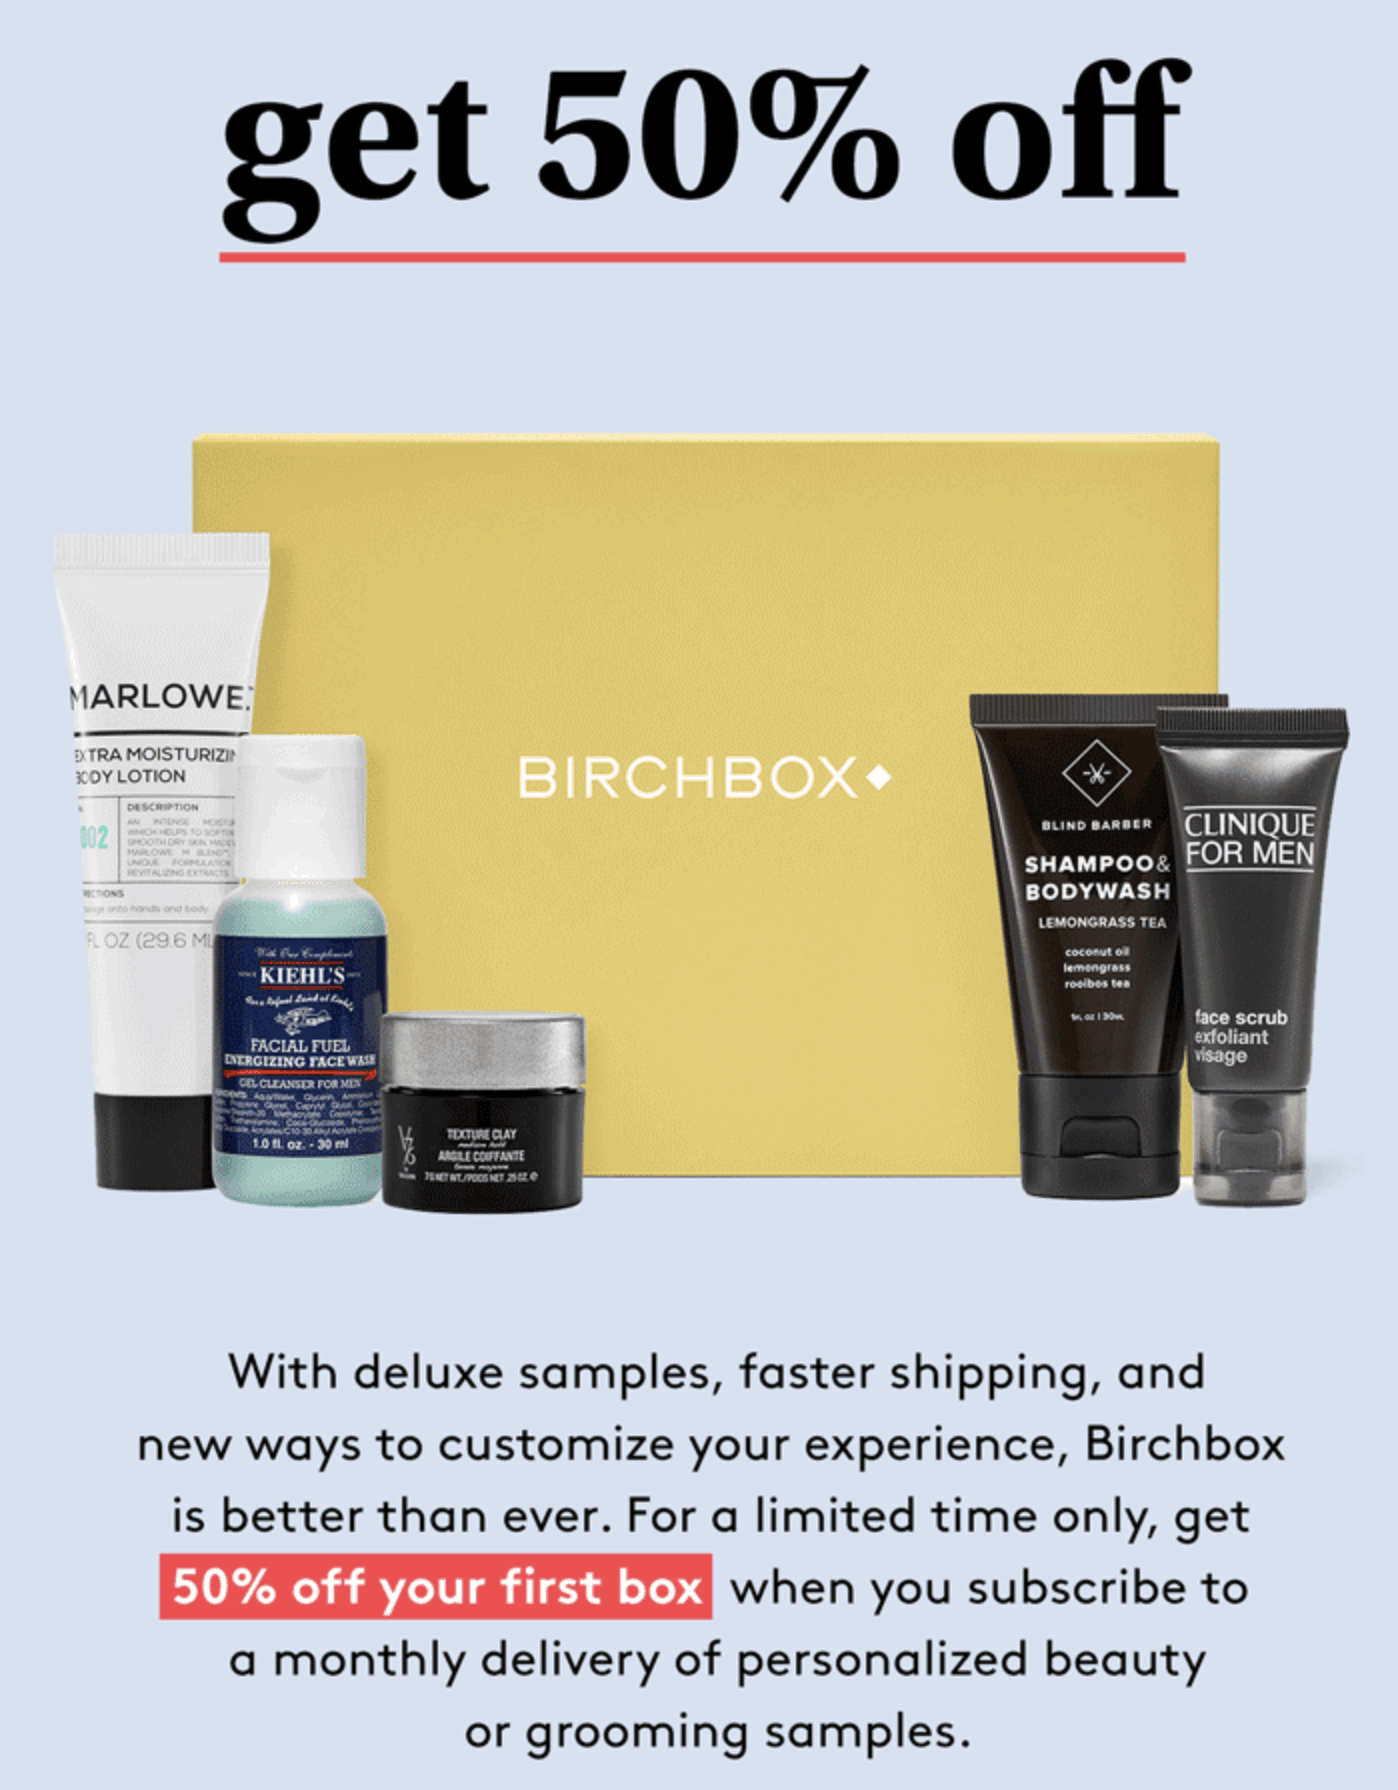 Birchbox Grooming Coupon: Get Your First Box 50% Off! - hello subscription